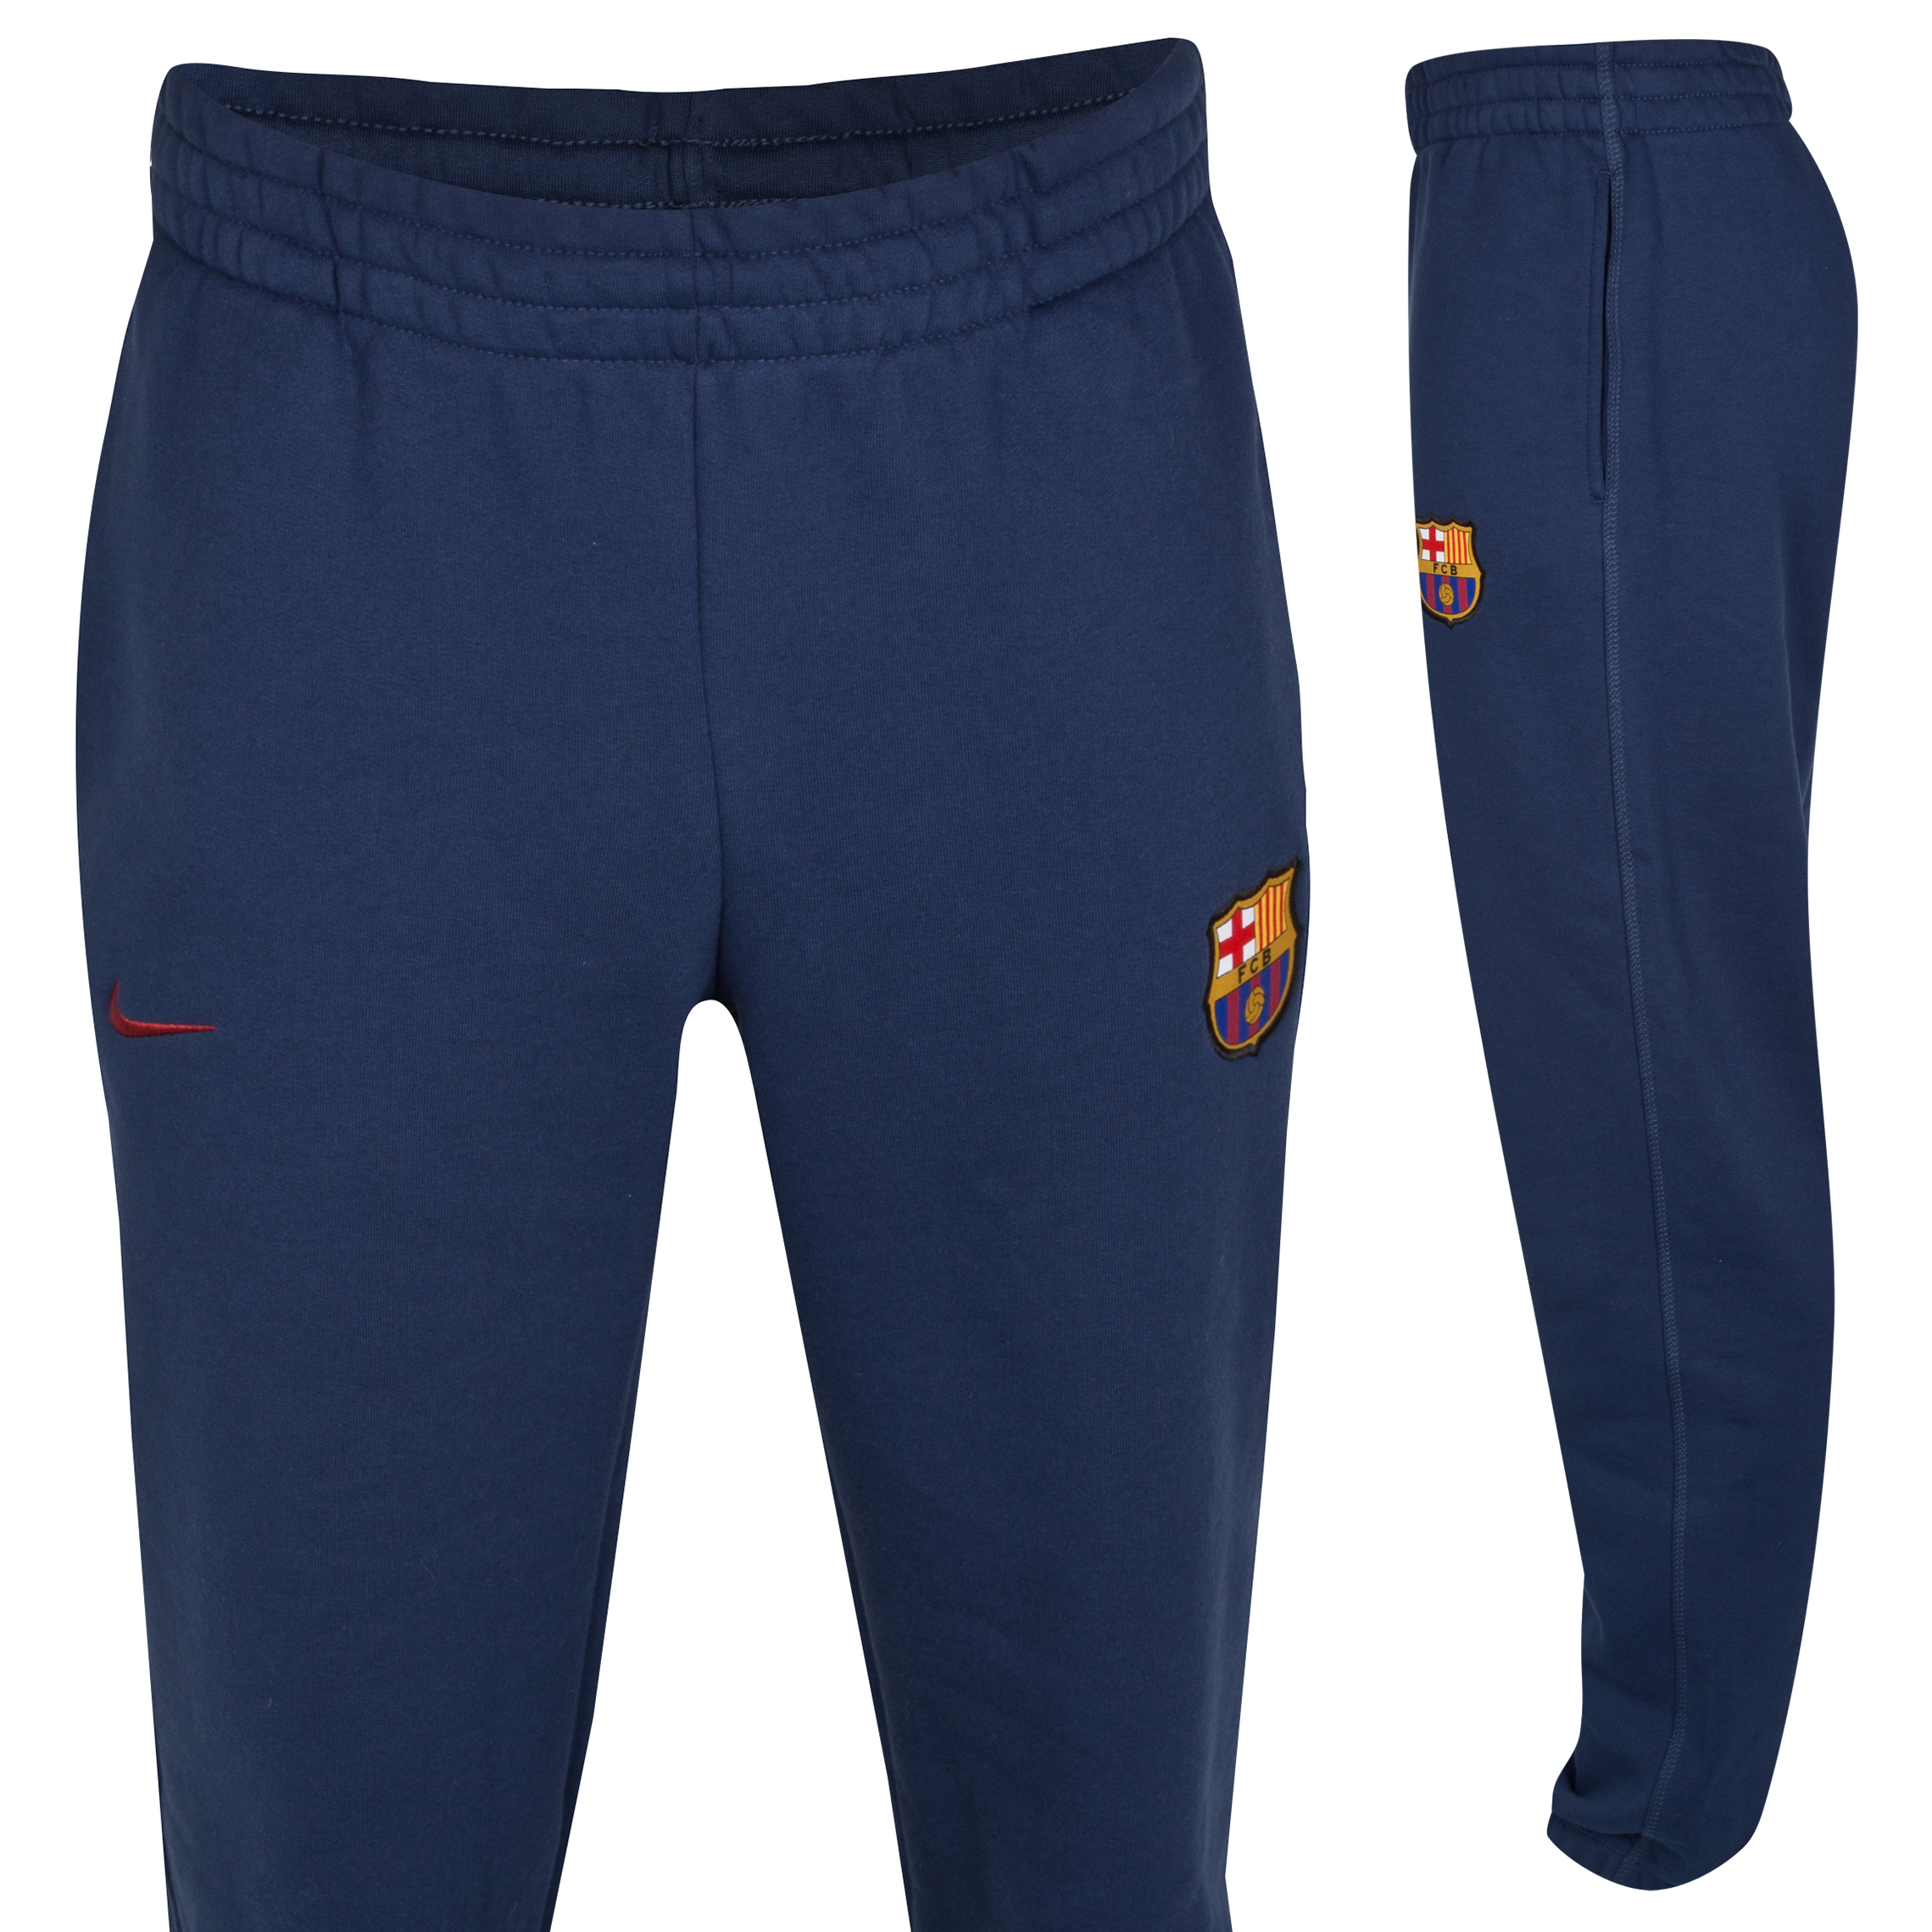 Barcelona Core Fleece Cuff Pant - Midnight Navy/Stormred